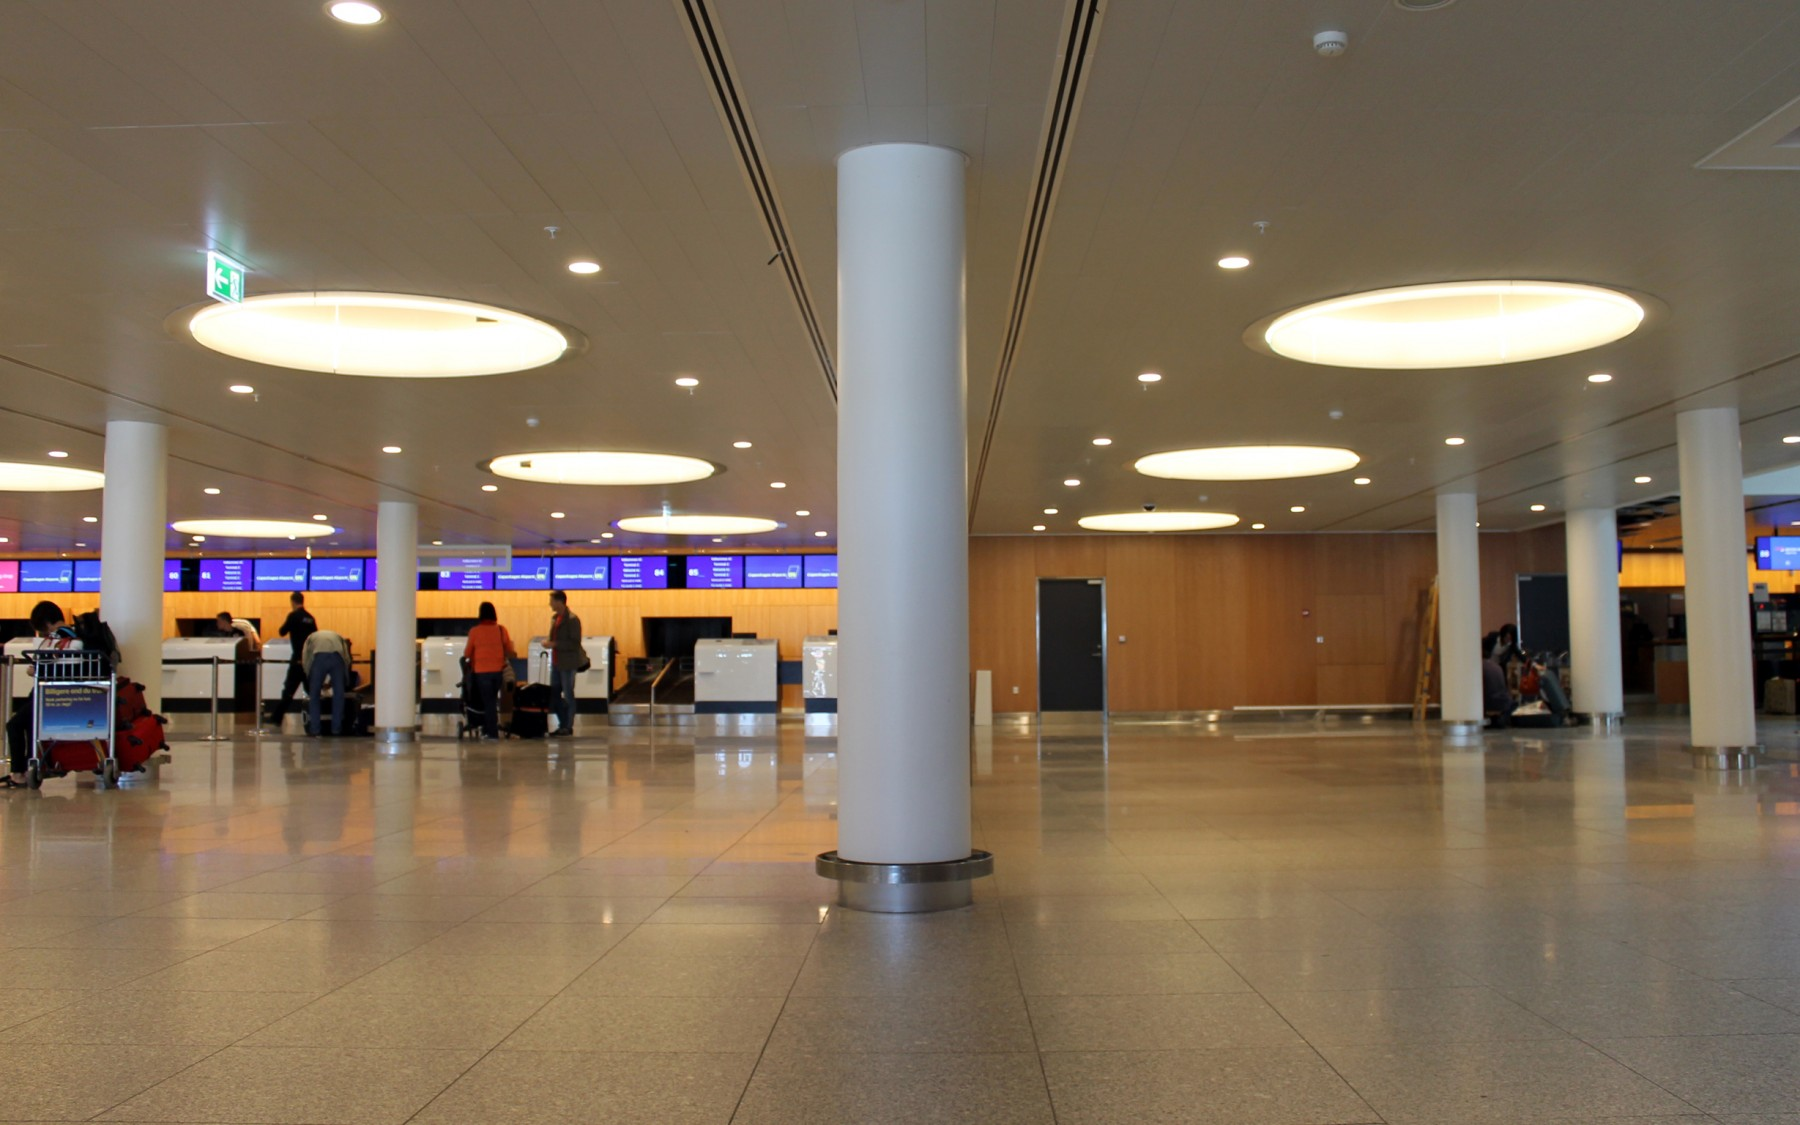 CPH Airport, Terminal 2, Planostile Clip-In Clip-In (200x1200), Hvid akustikfilt, Perforeret ud over kant.